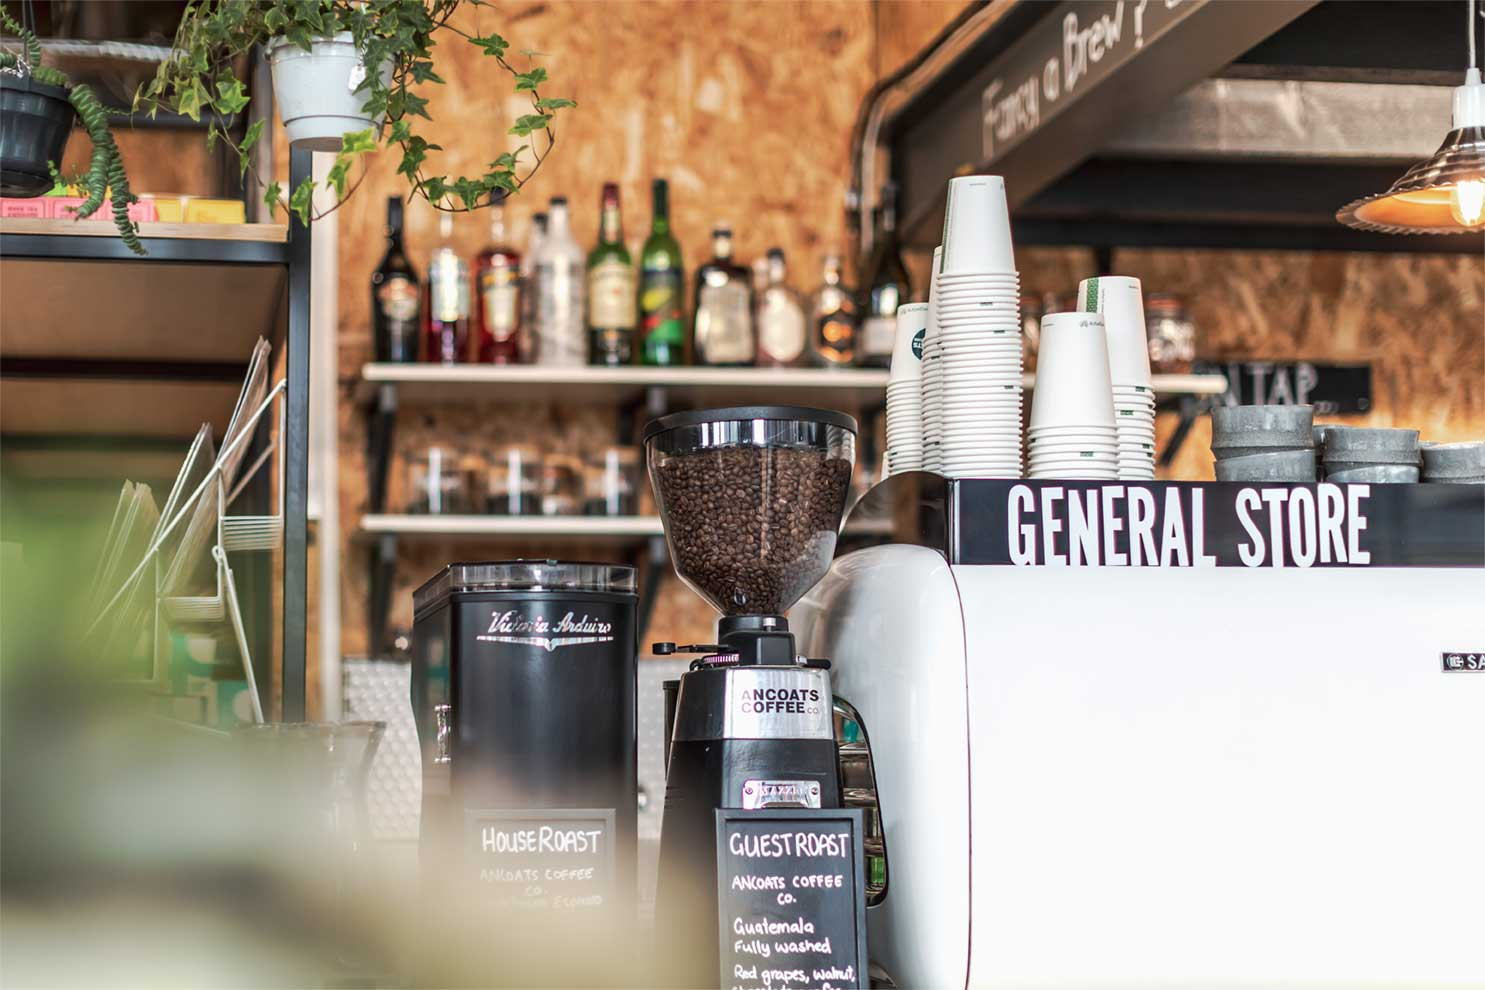 A 'General Store' is opening up at Manchester's newest canalside neighbourhood KAMPUS, The Manc